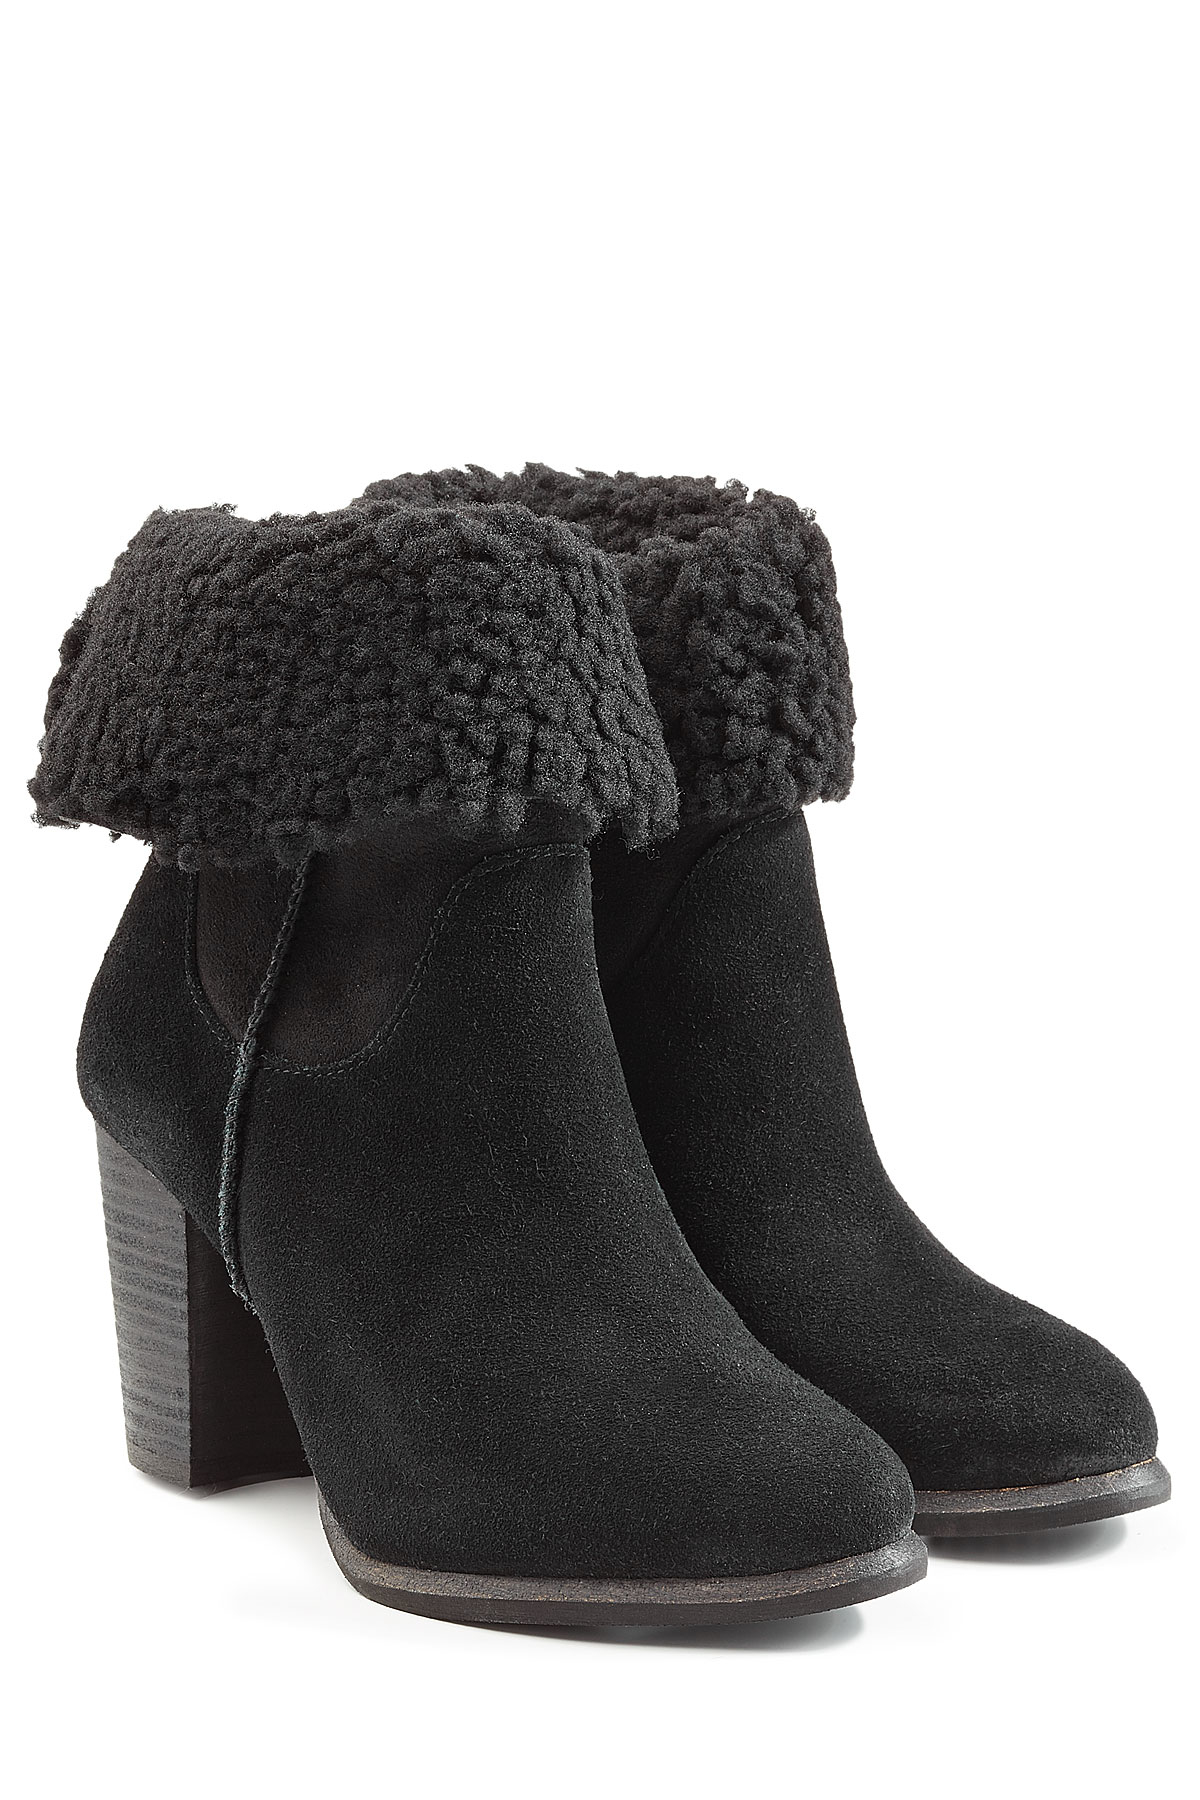 Ugg Charlee Suede Ankle Boots With Sheepskin - Black in ...